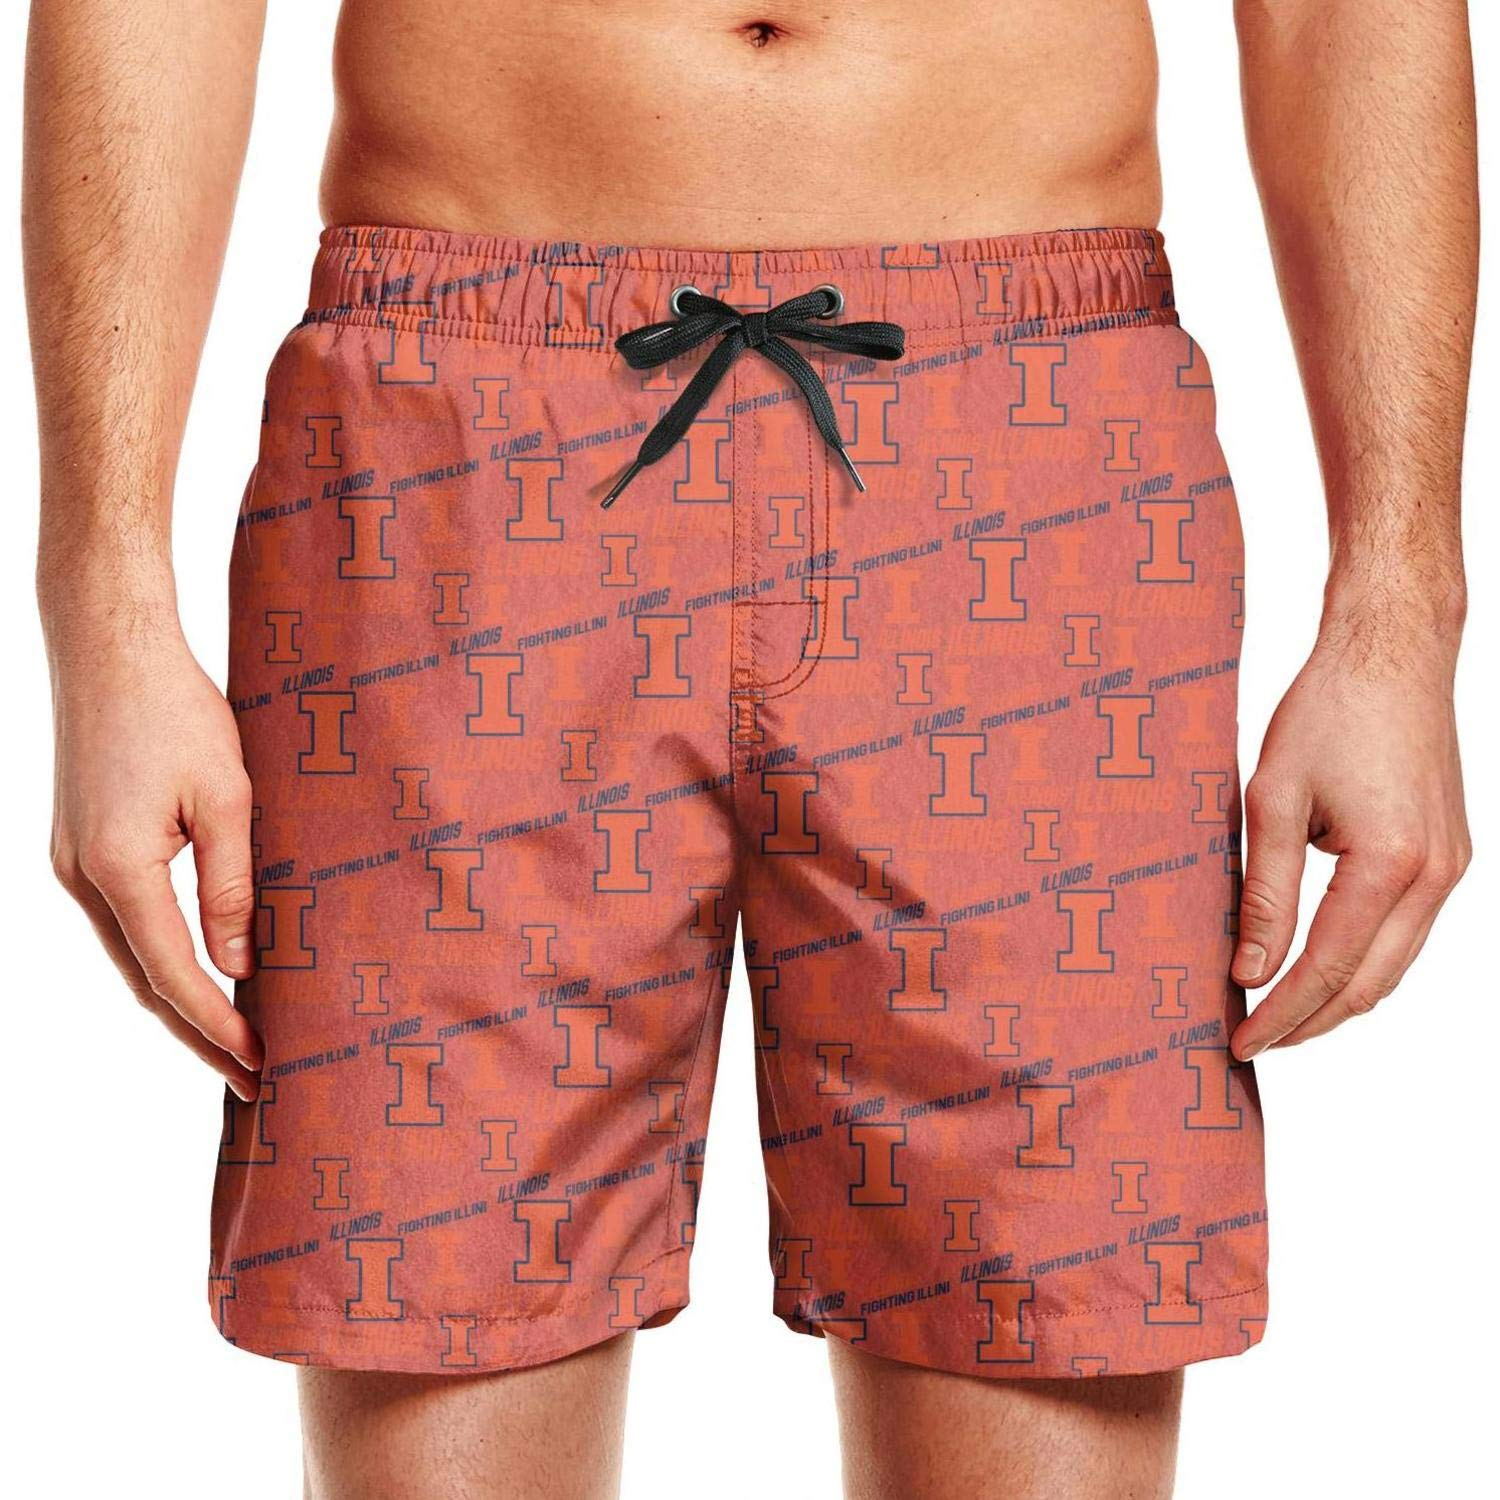 Nayouotyp Summer Illinois Fighting Illini Basketball Black Men Swimming Trunks Shorts Quick Dry Miles Surfing Tropical Short